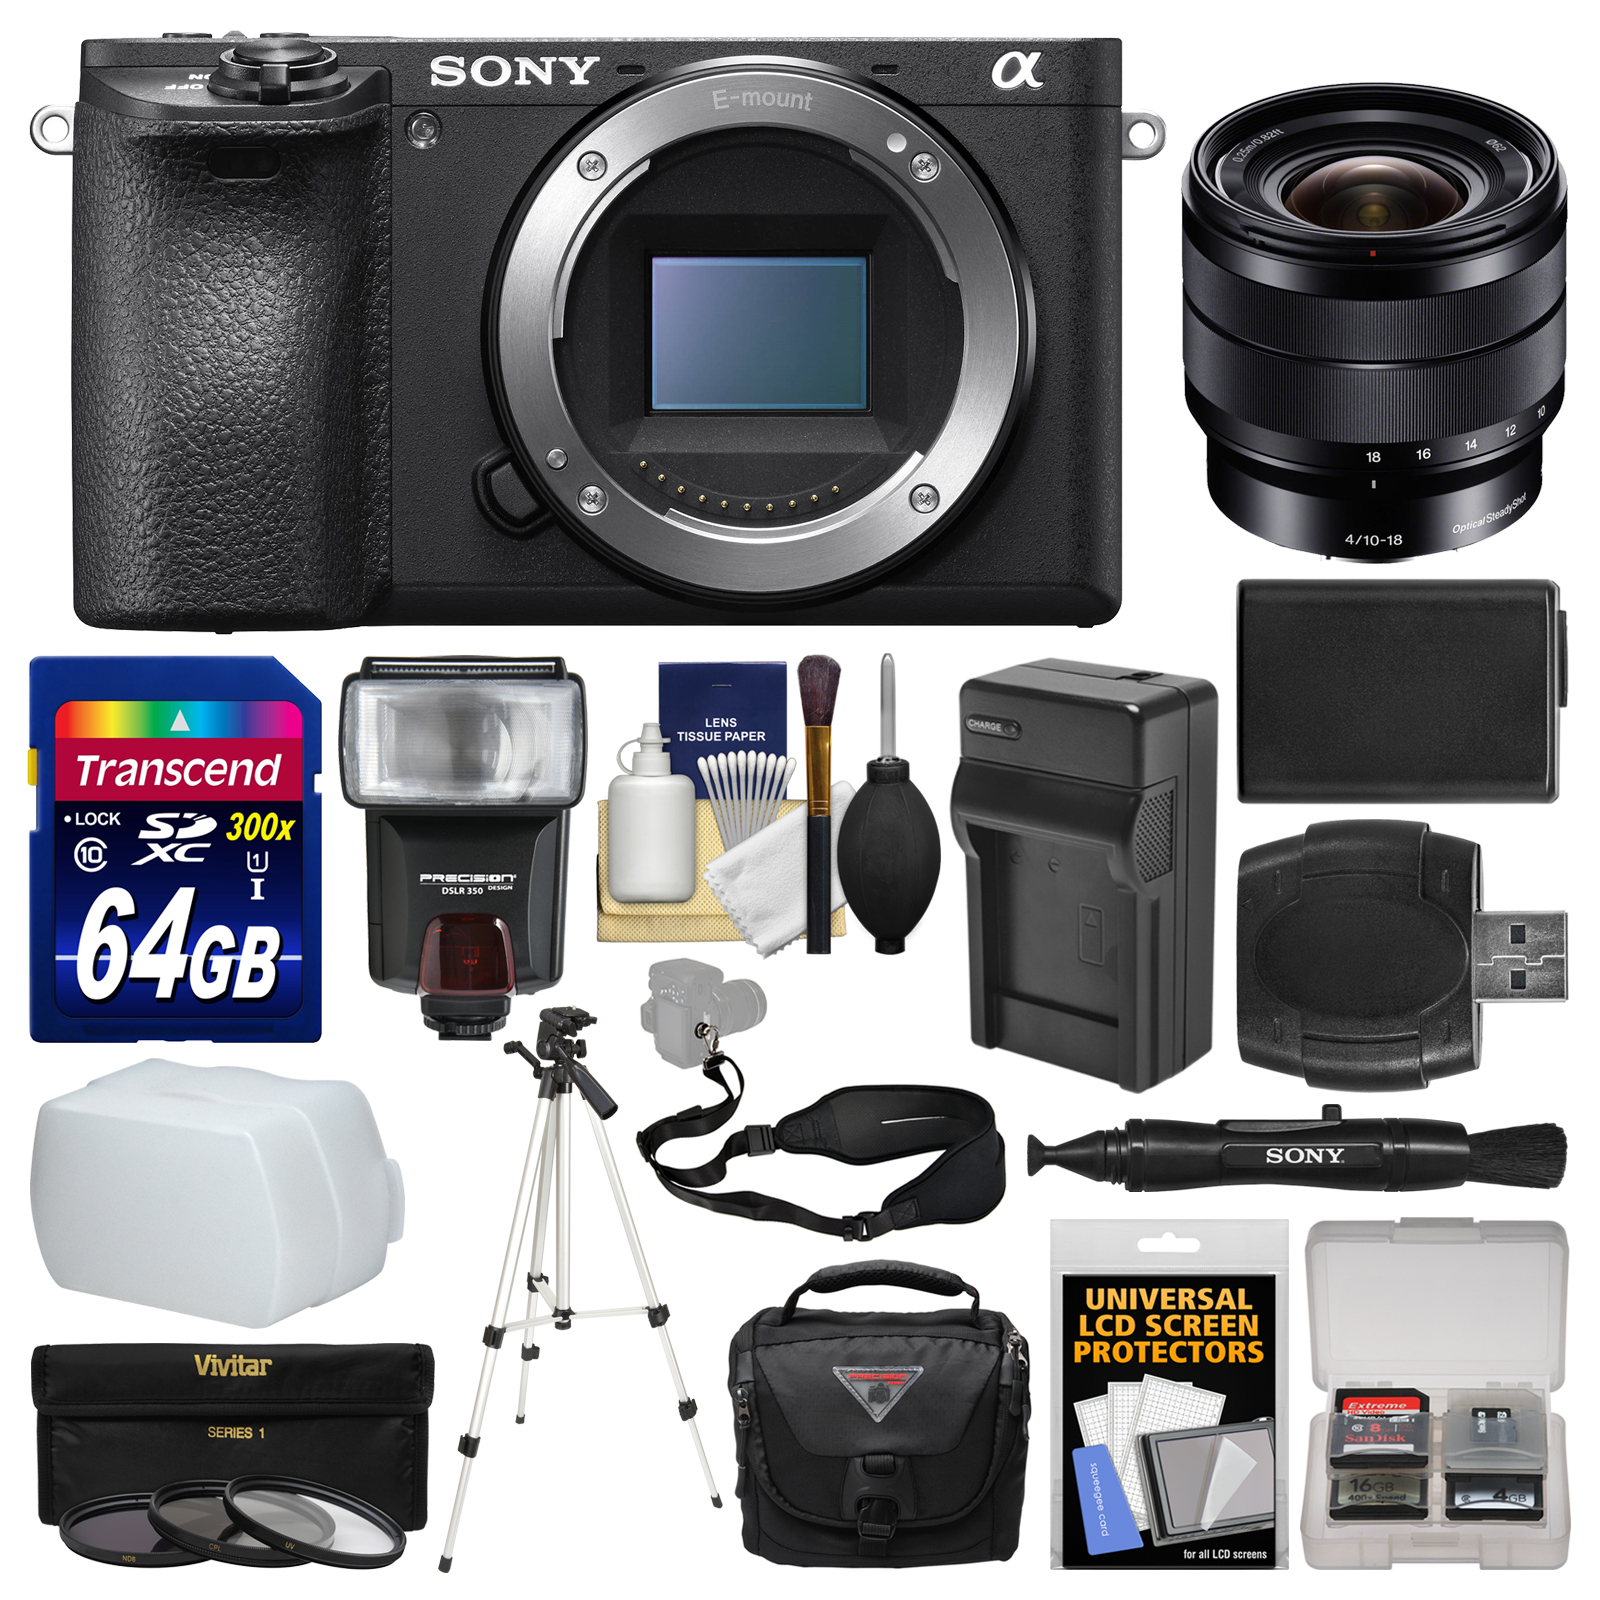 Sony Alpha A6500 4K Wi-Fi Digital Camera Body with 10-18mm f/4.0 Lens + 64GB Card + Case + Flash + Battery & Charger + Tripod + Kit